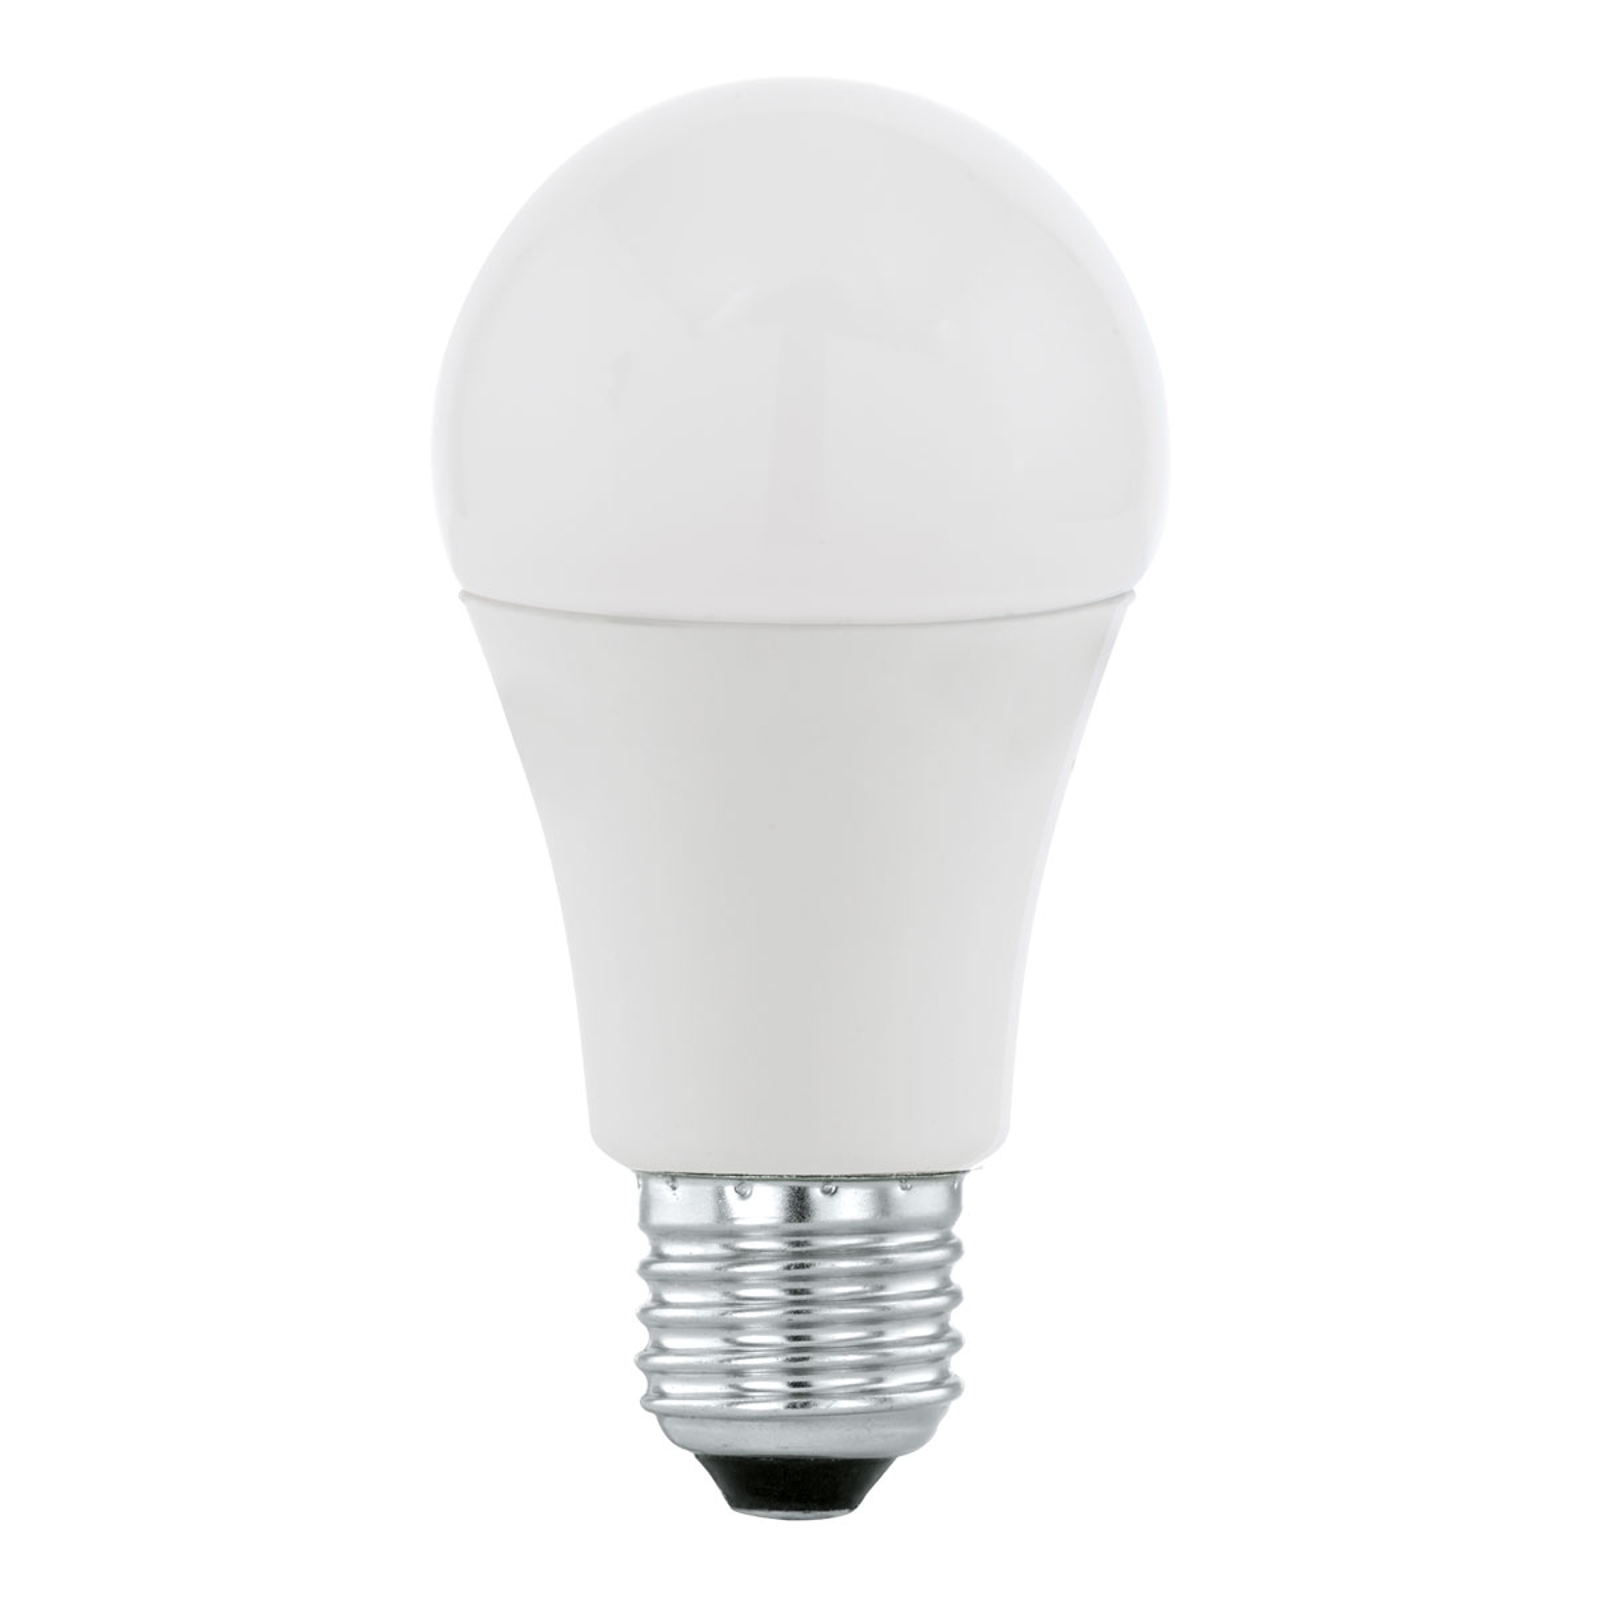 LED-Lampe E27 A60 10W, warmweiß, opal